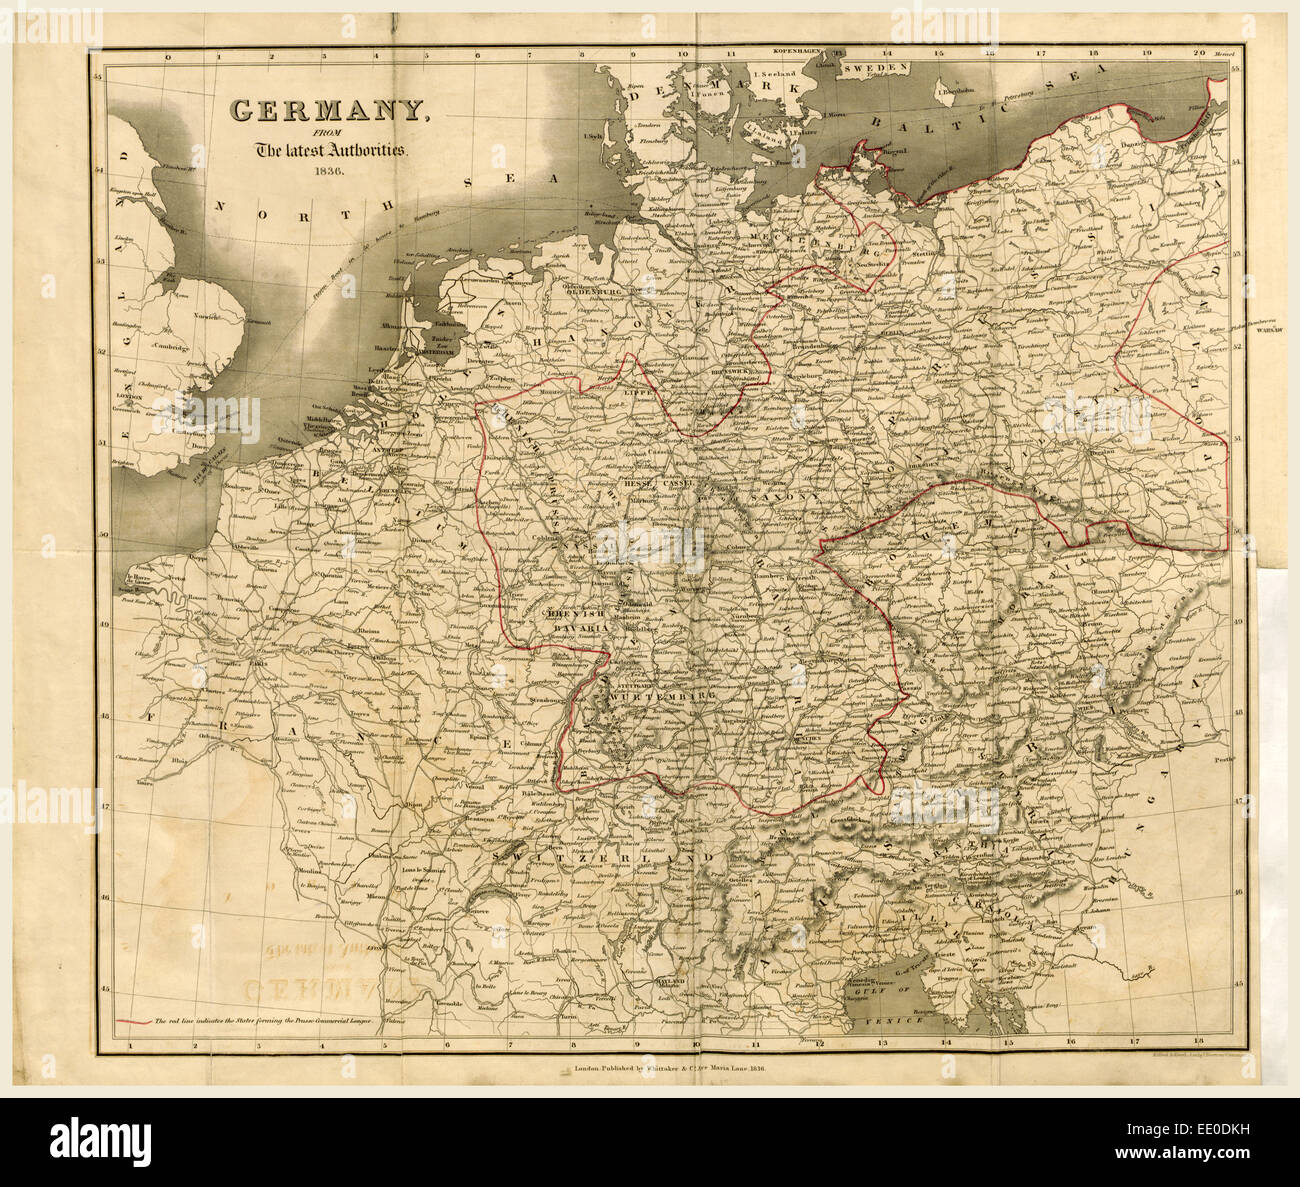 Map Germany 1836, 19th century engraving - Stock Image